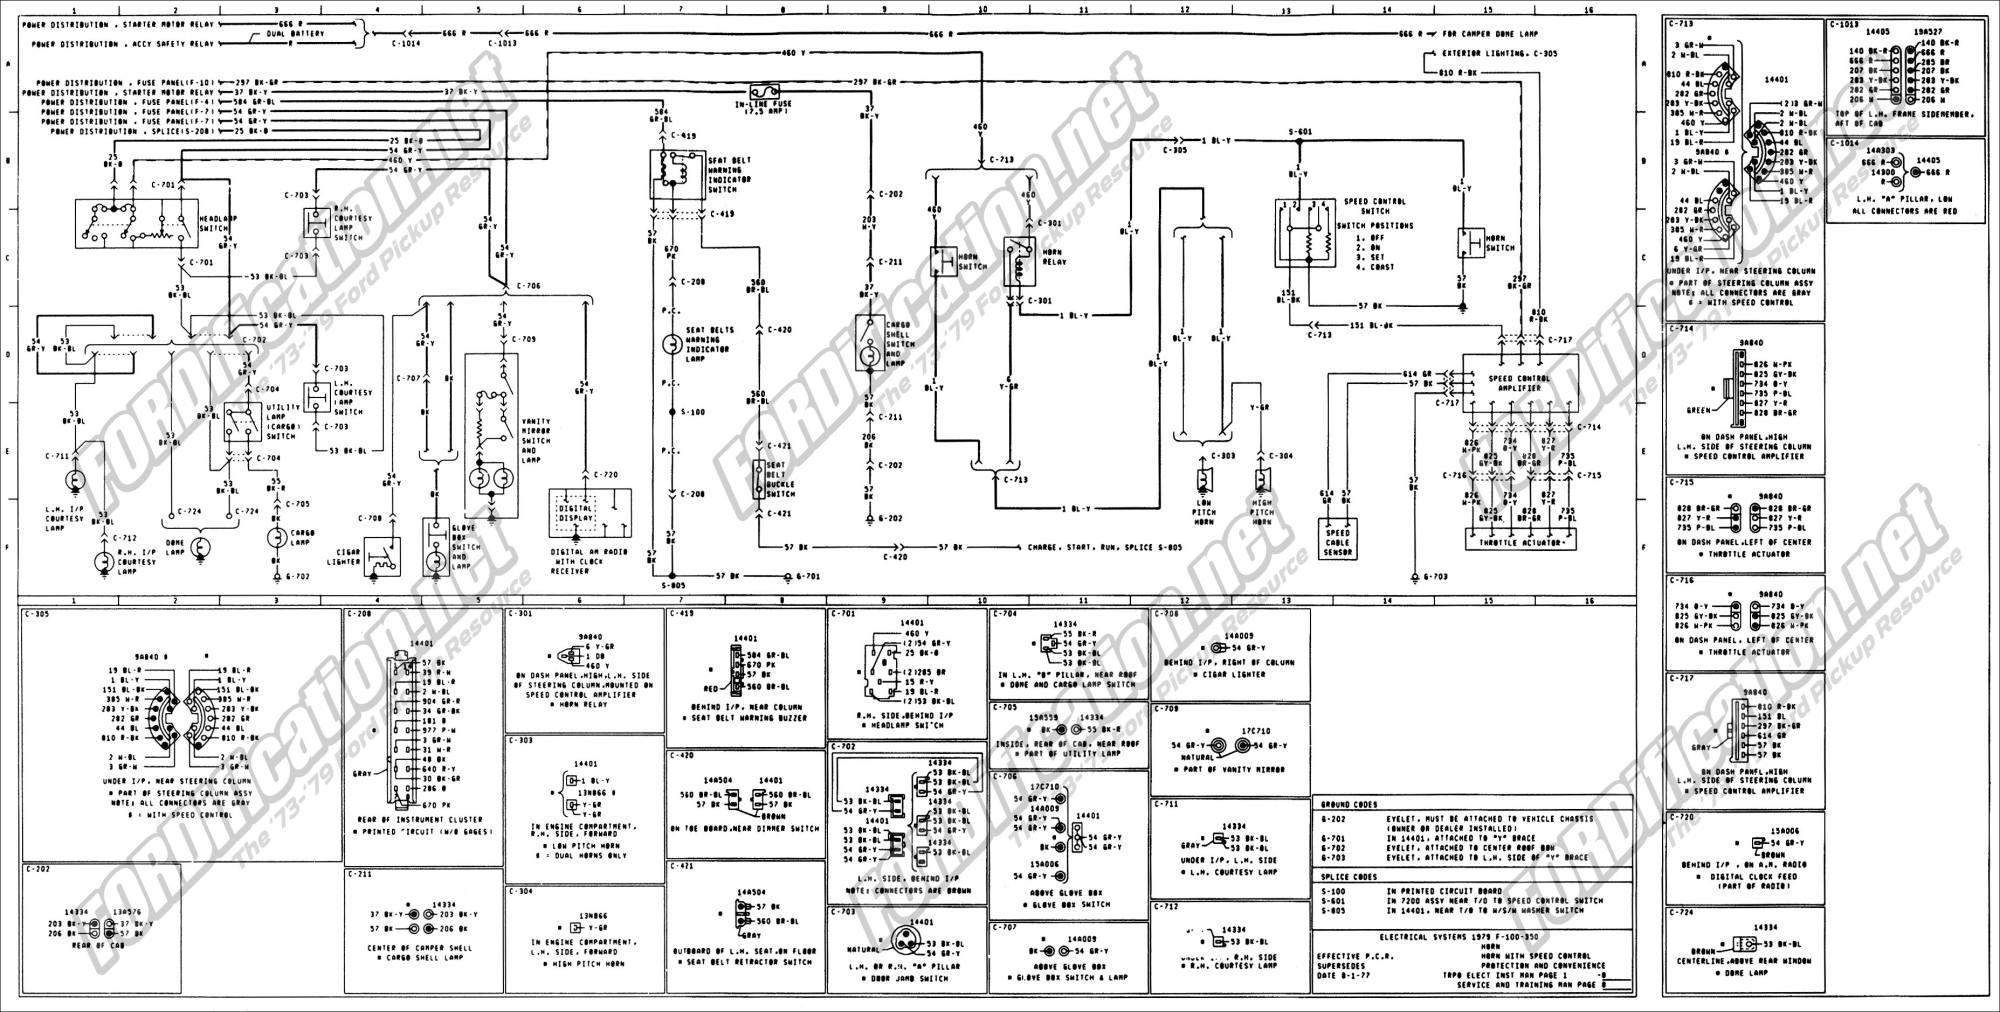 hight resolution of f250 horn wiring diagram schematics wiring diagrams u2022 rh schoosretailstores com 1990 f250 4x4 1997 f250